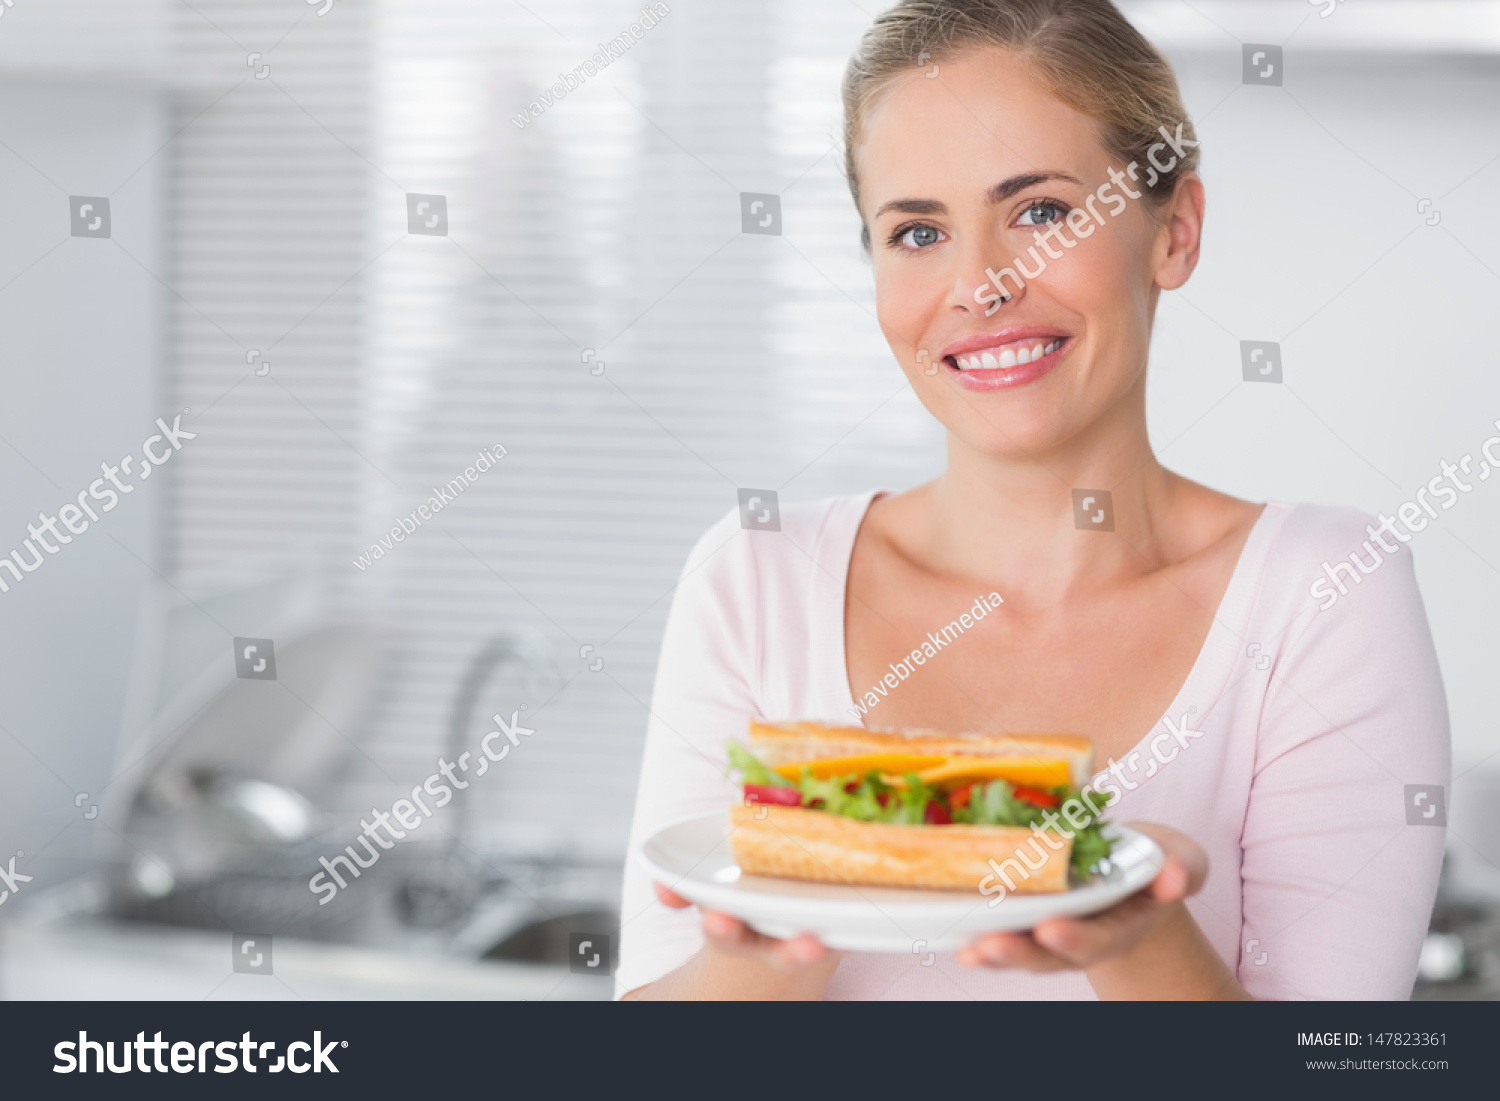 Happy Woman Holding Sandwich Her Kitchen Stock Photo 147823361 ...